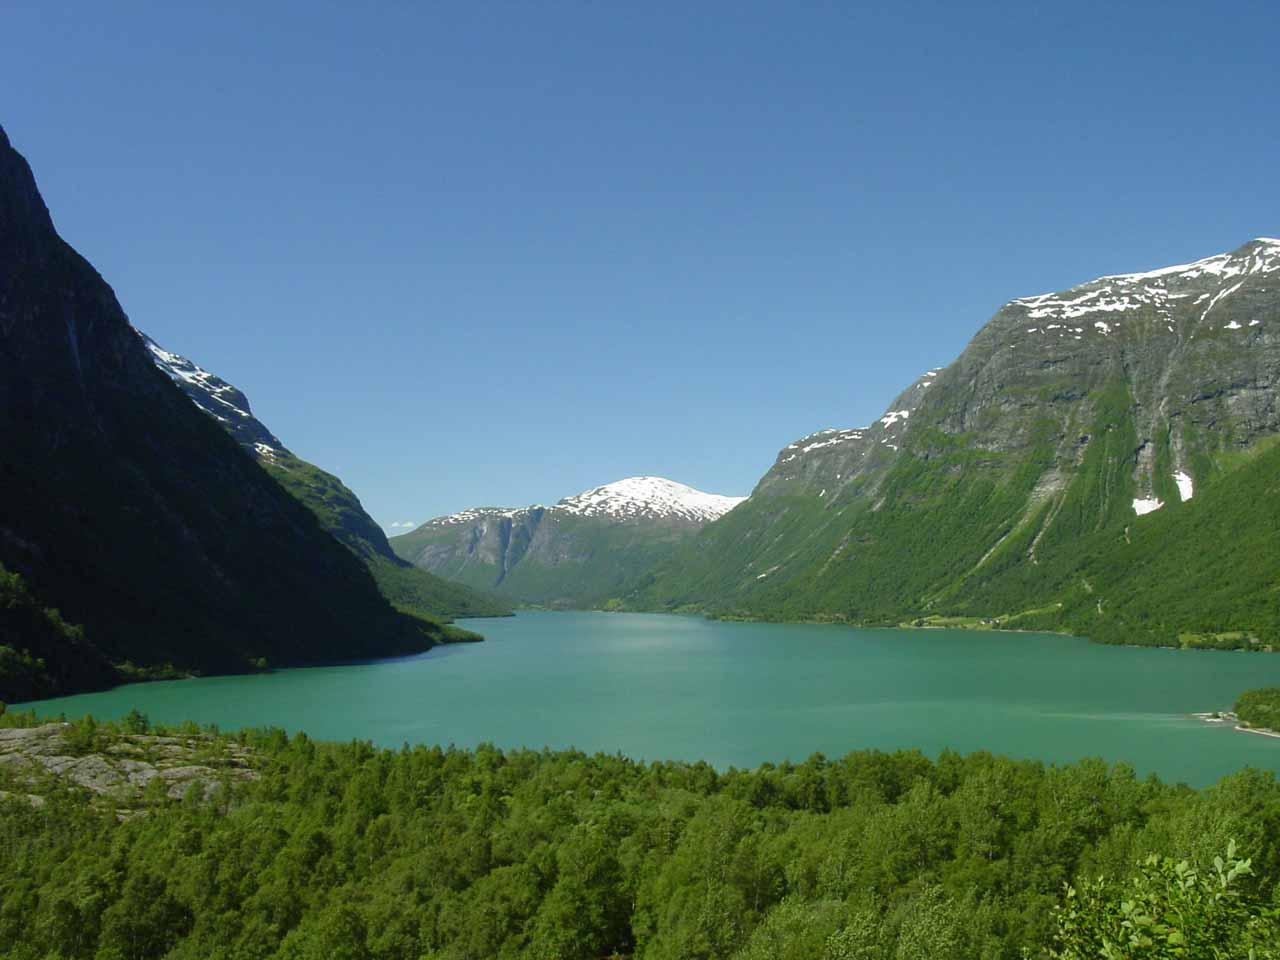 Looking back at the lake Lovatnet from our suboptimal vantage point for Ramnefjellsfossen